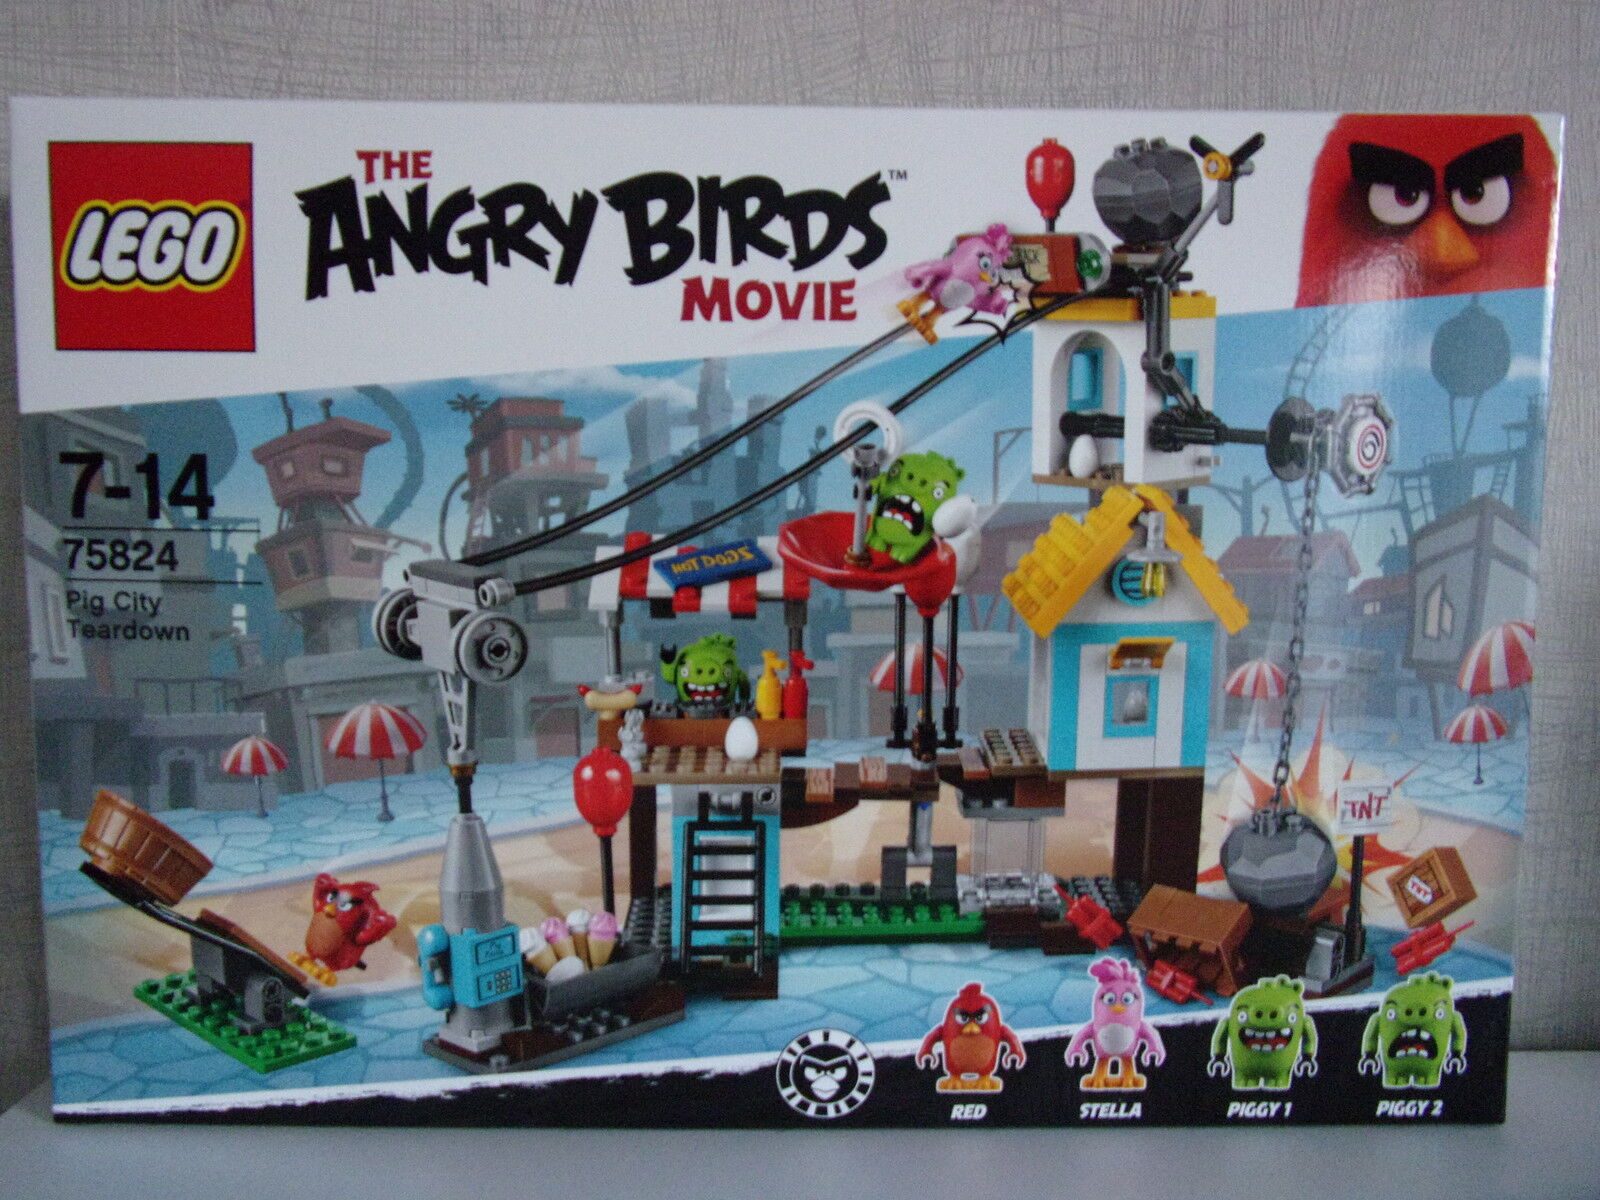 LEGO Angry Birds 75824 ( Pig City Teardown Building Set) - NIP